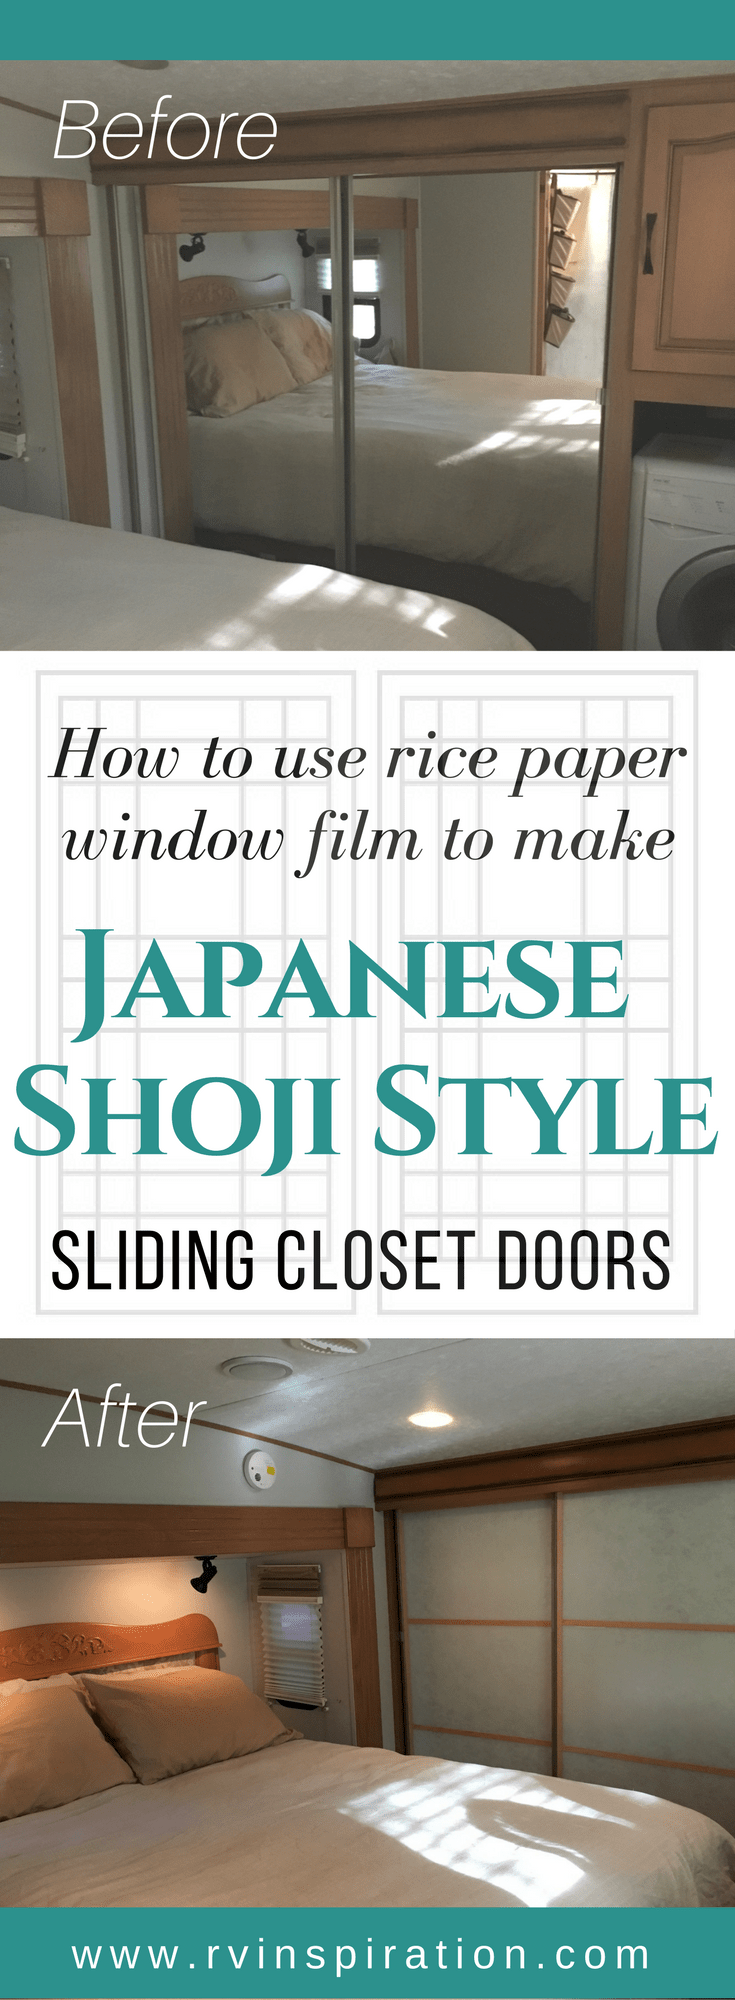 DIY Mirror Closet Makeover Idea: How to Turn Sliding Doors into Japanese Shoji Screens | RVinspiration.com | ideas for motorhomes, campers, travel trailers, and RVs